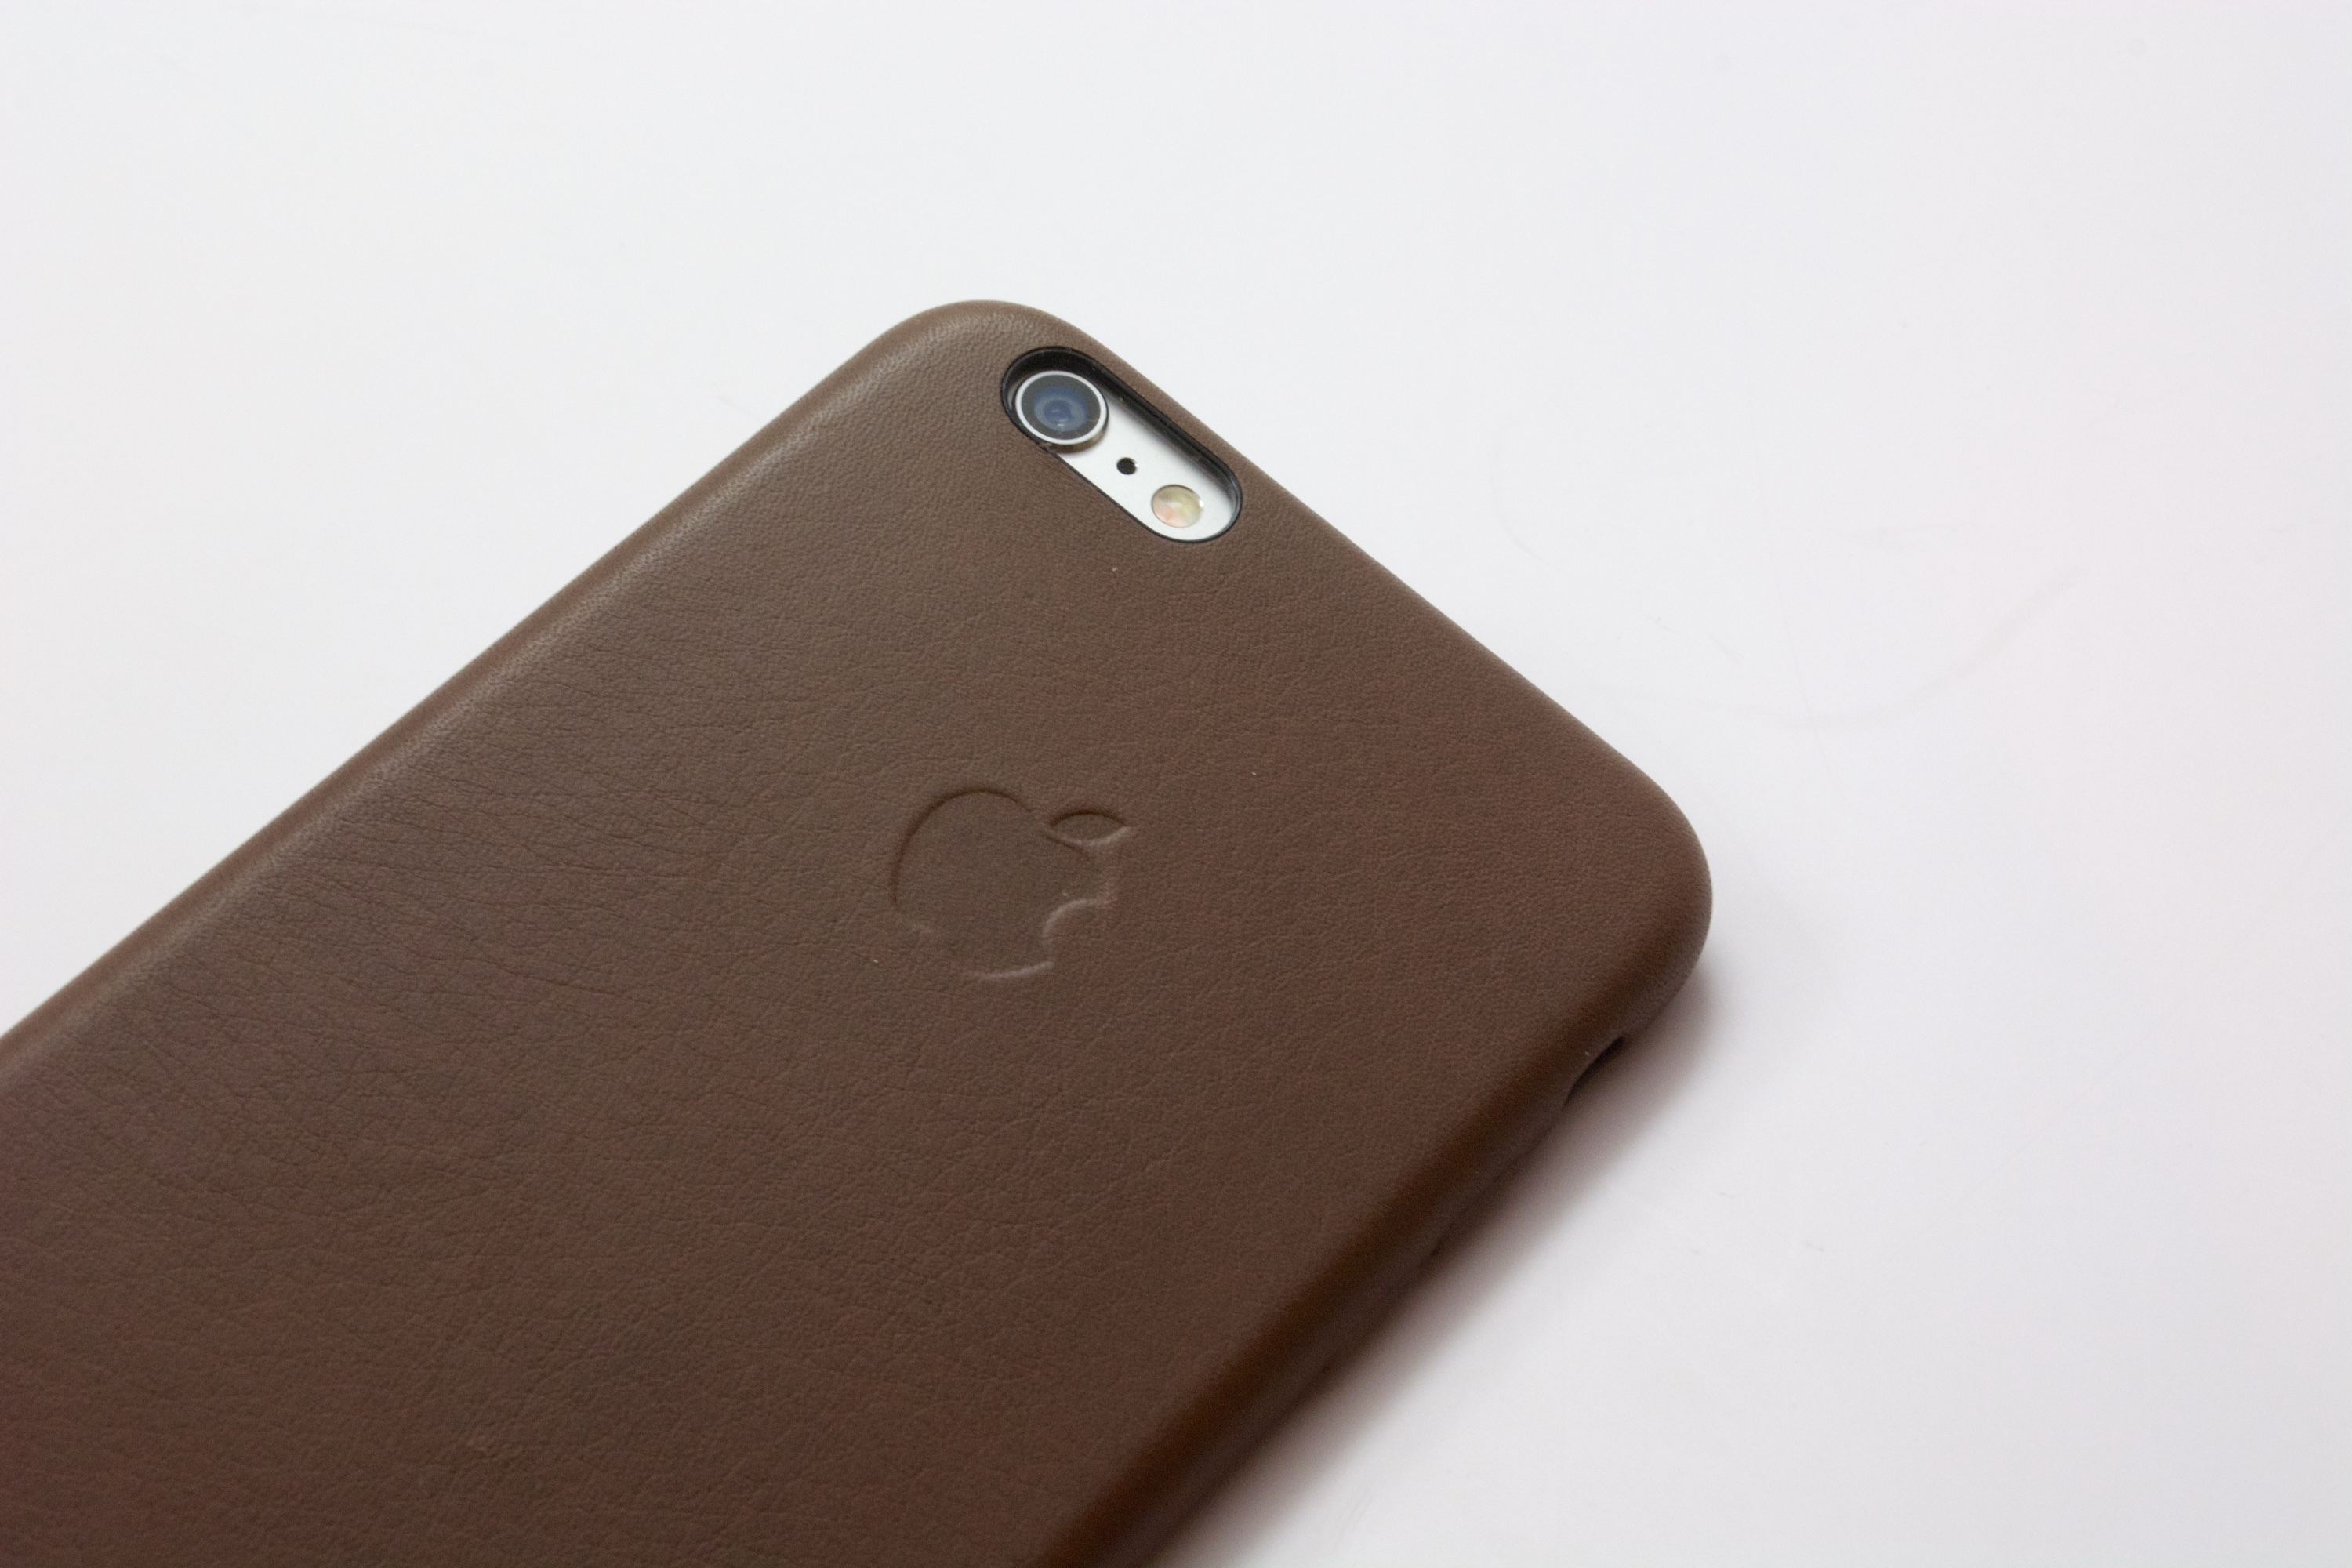 official iphone 6 leather case